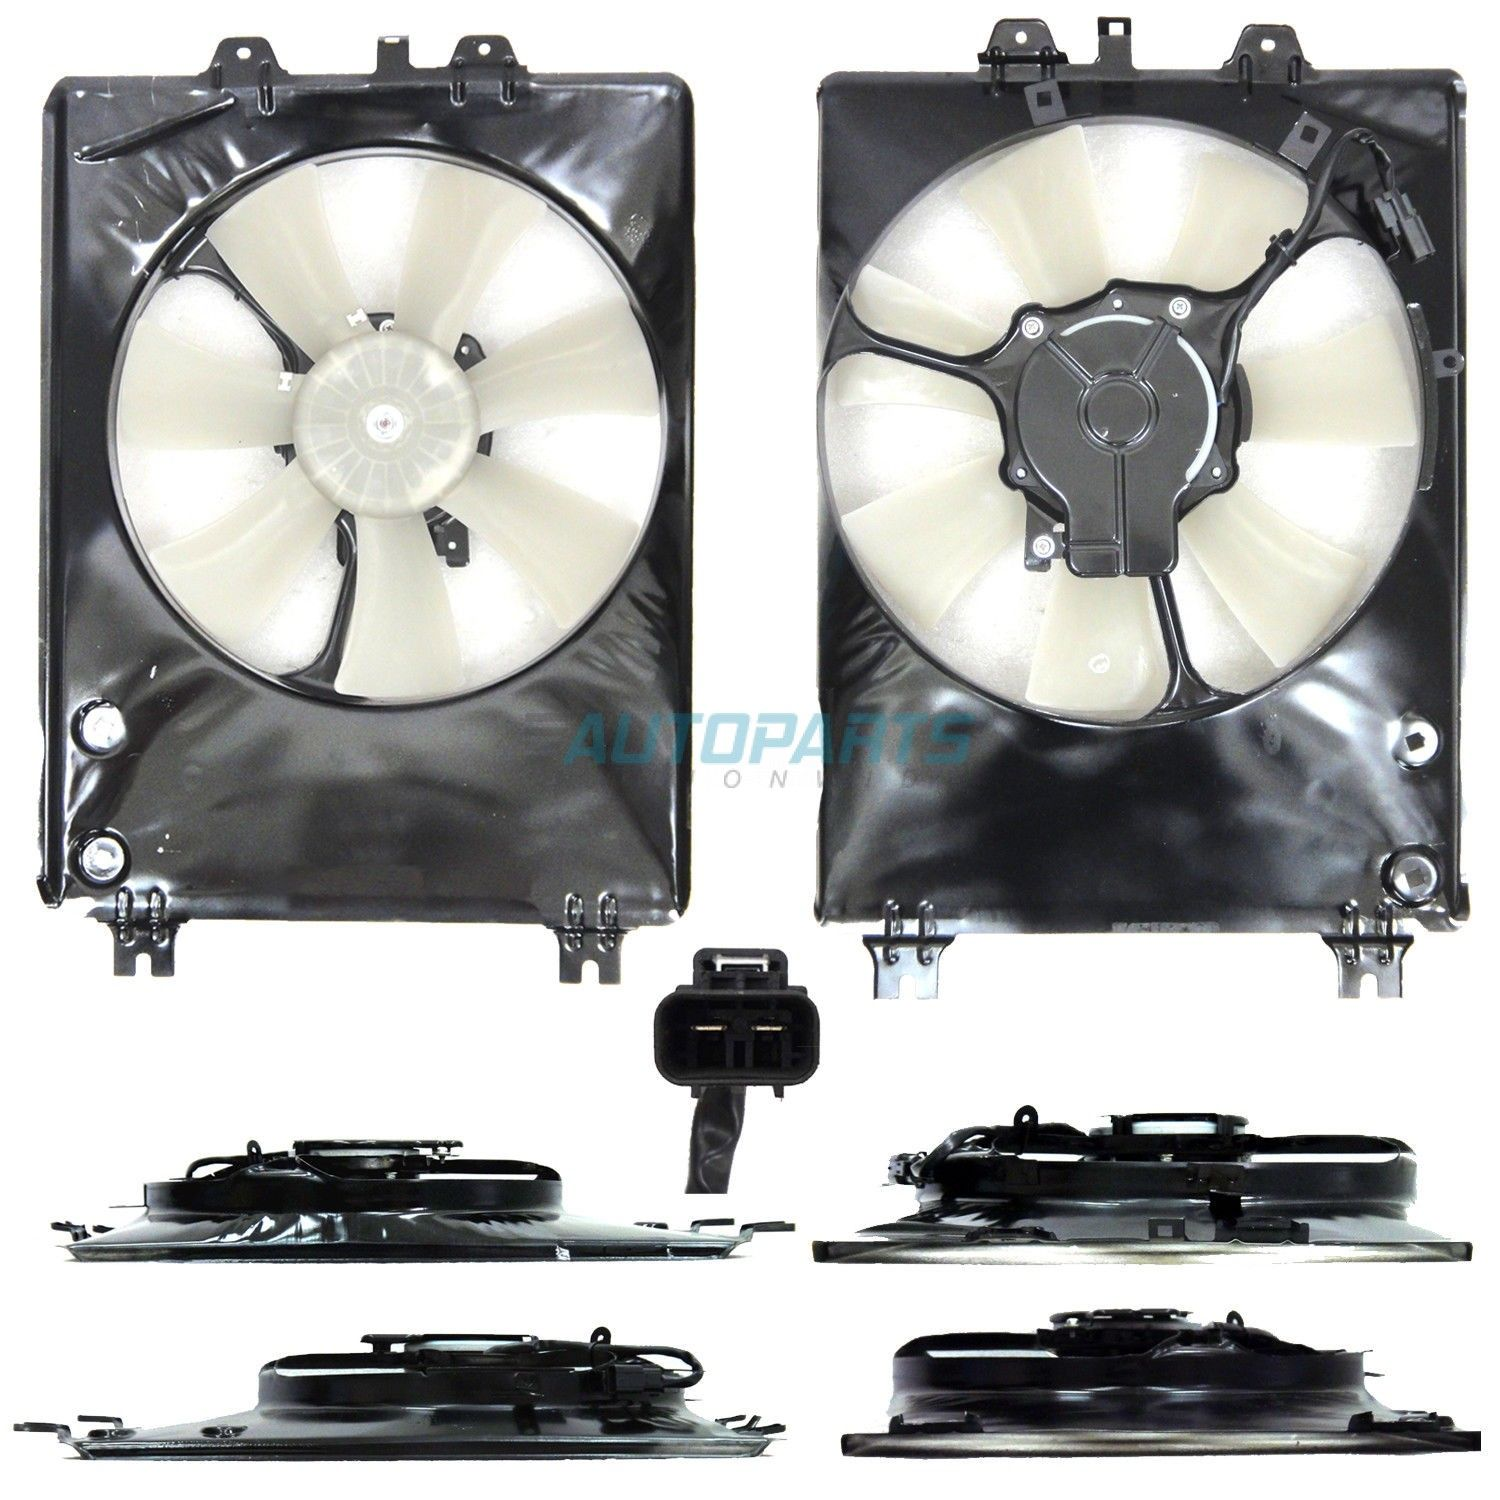 New Passenger Side Condenser Fan Assembly Fits 2010-2013